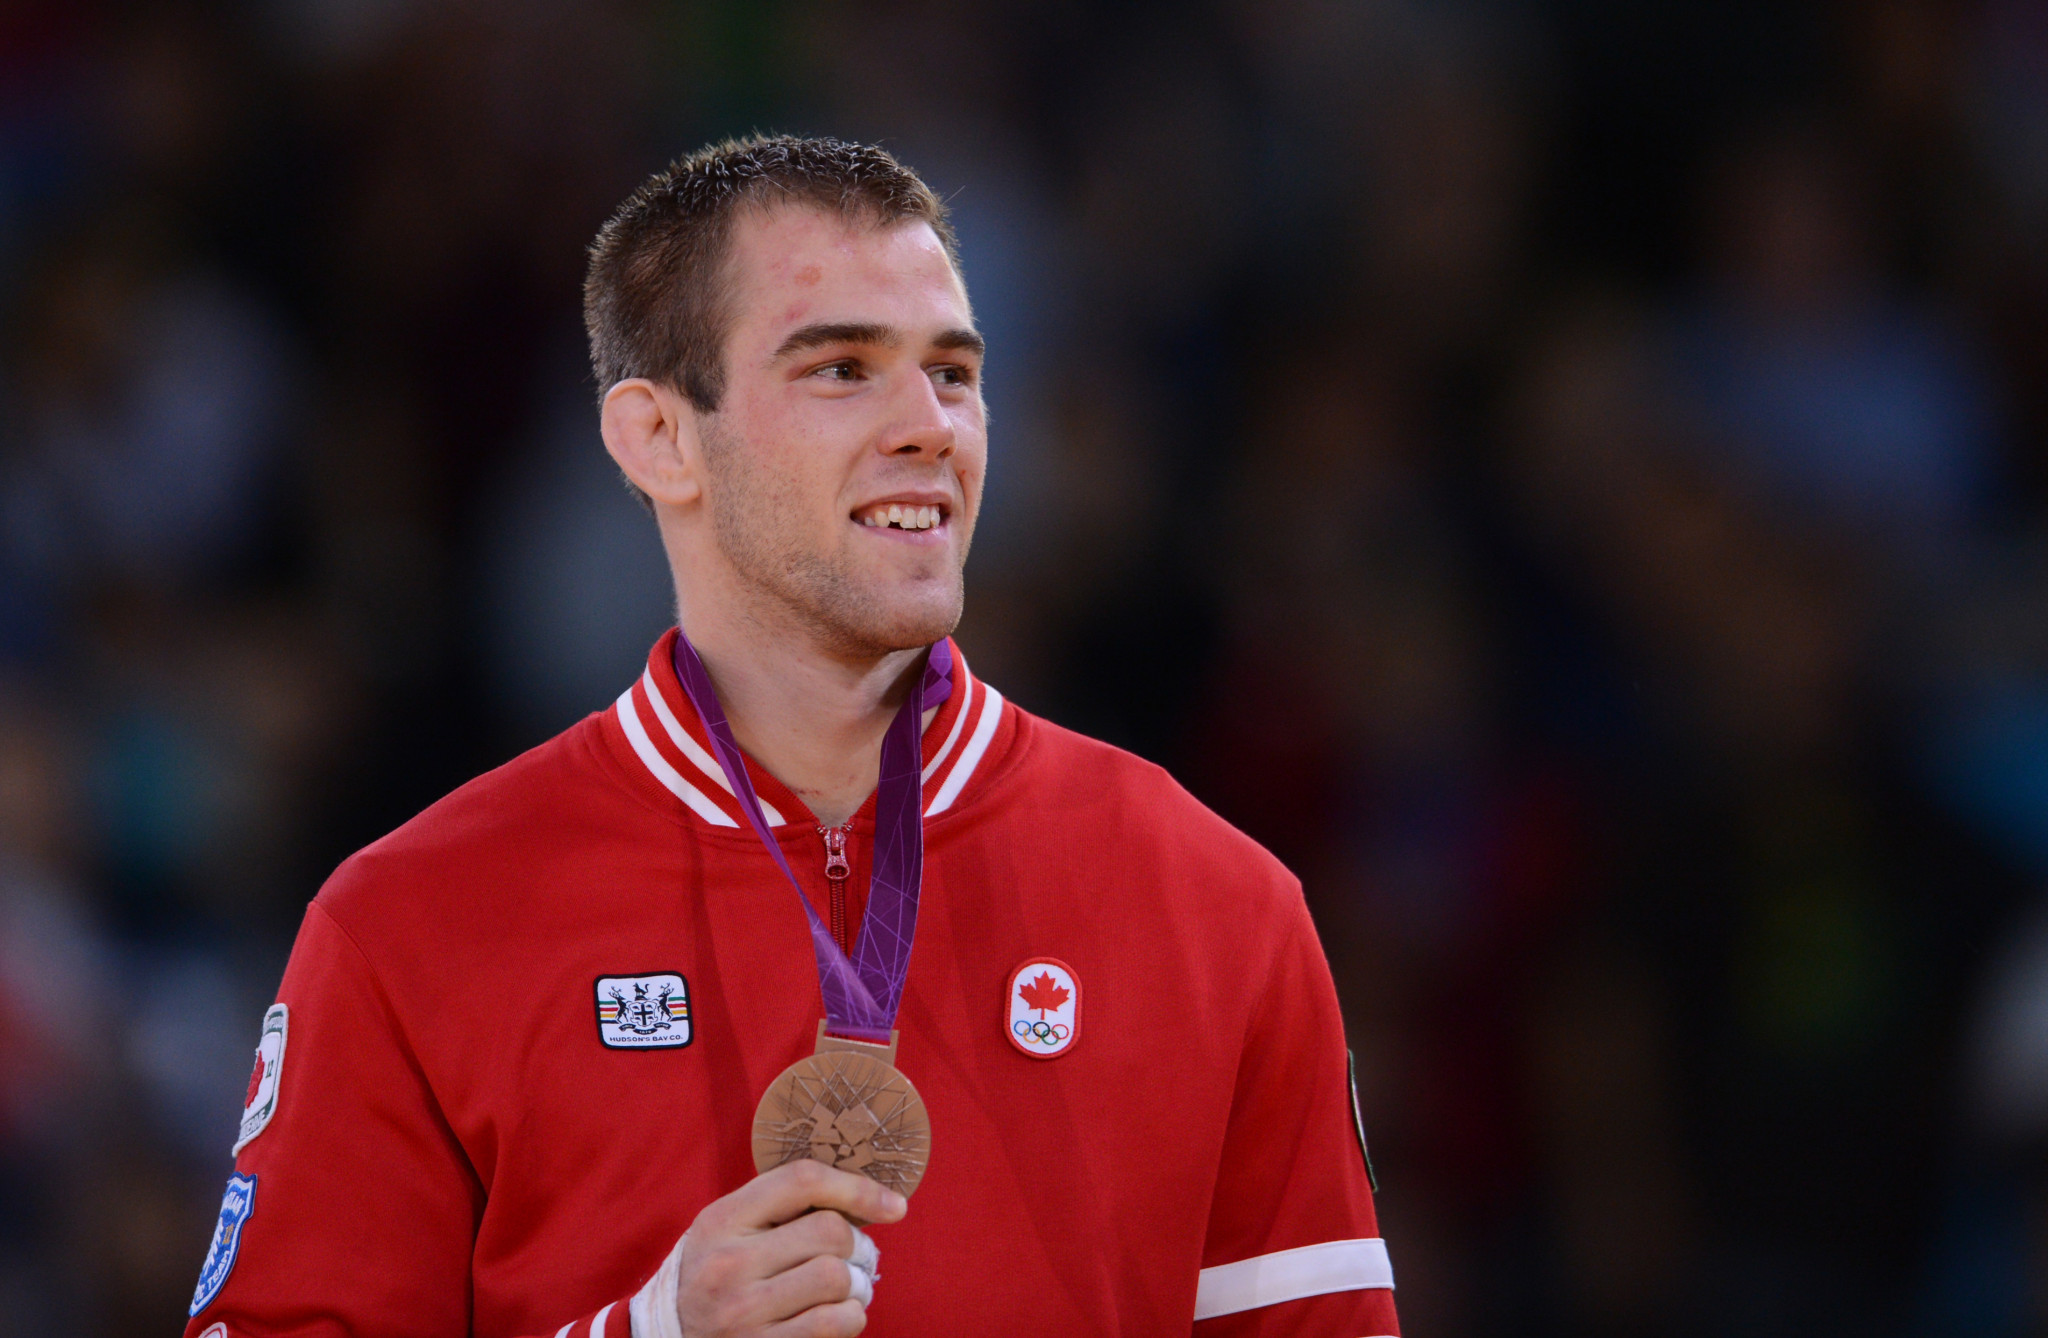 Antoine Valois-Fortier was the last Canadian judoka to win an Olympic medal, doing so at London 2012 ©Getty Images